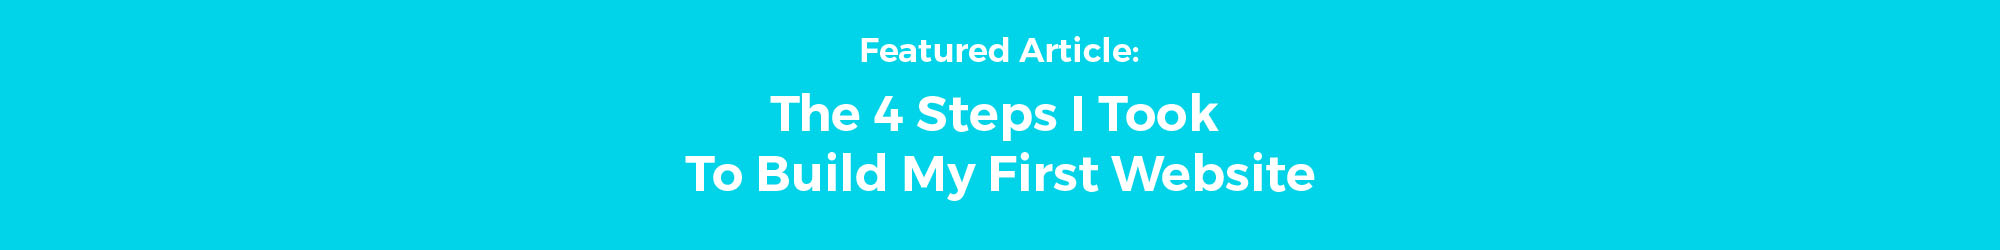 The 4 Steps I Took To Build My First Website